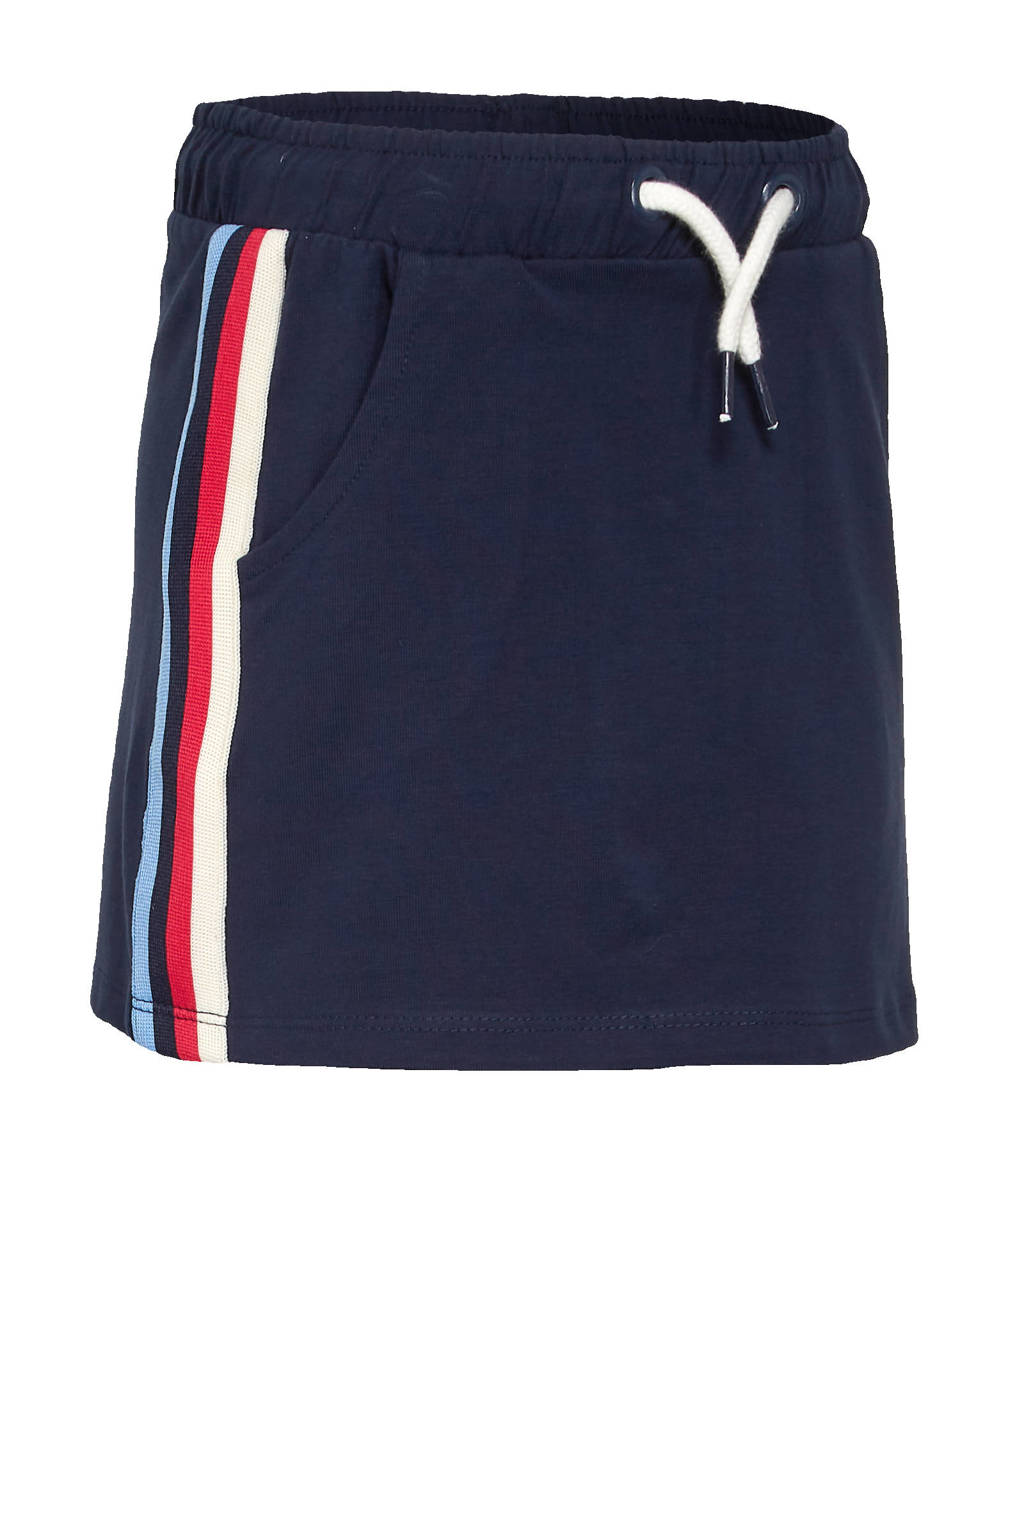 C&A Palomino rok met contrastbies donkerblauw/rood/wit, Donkerblauw